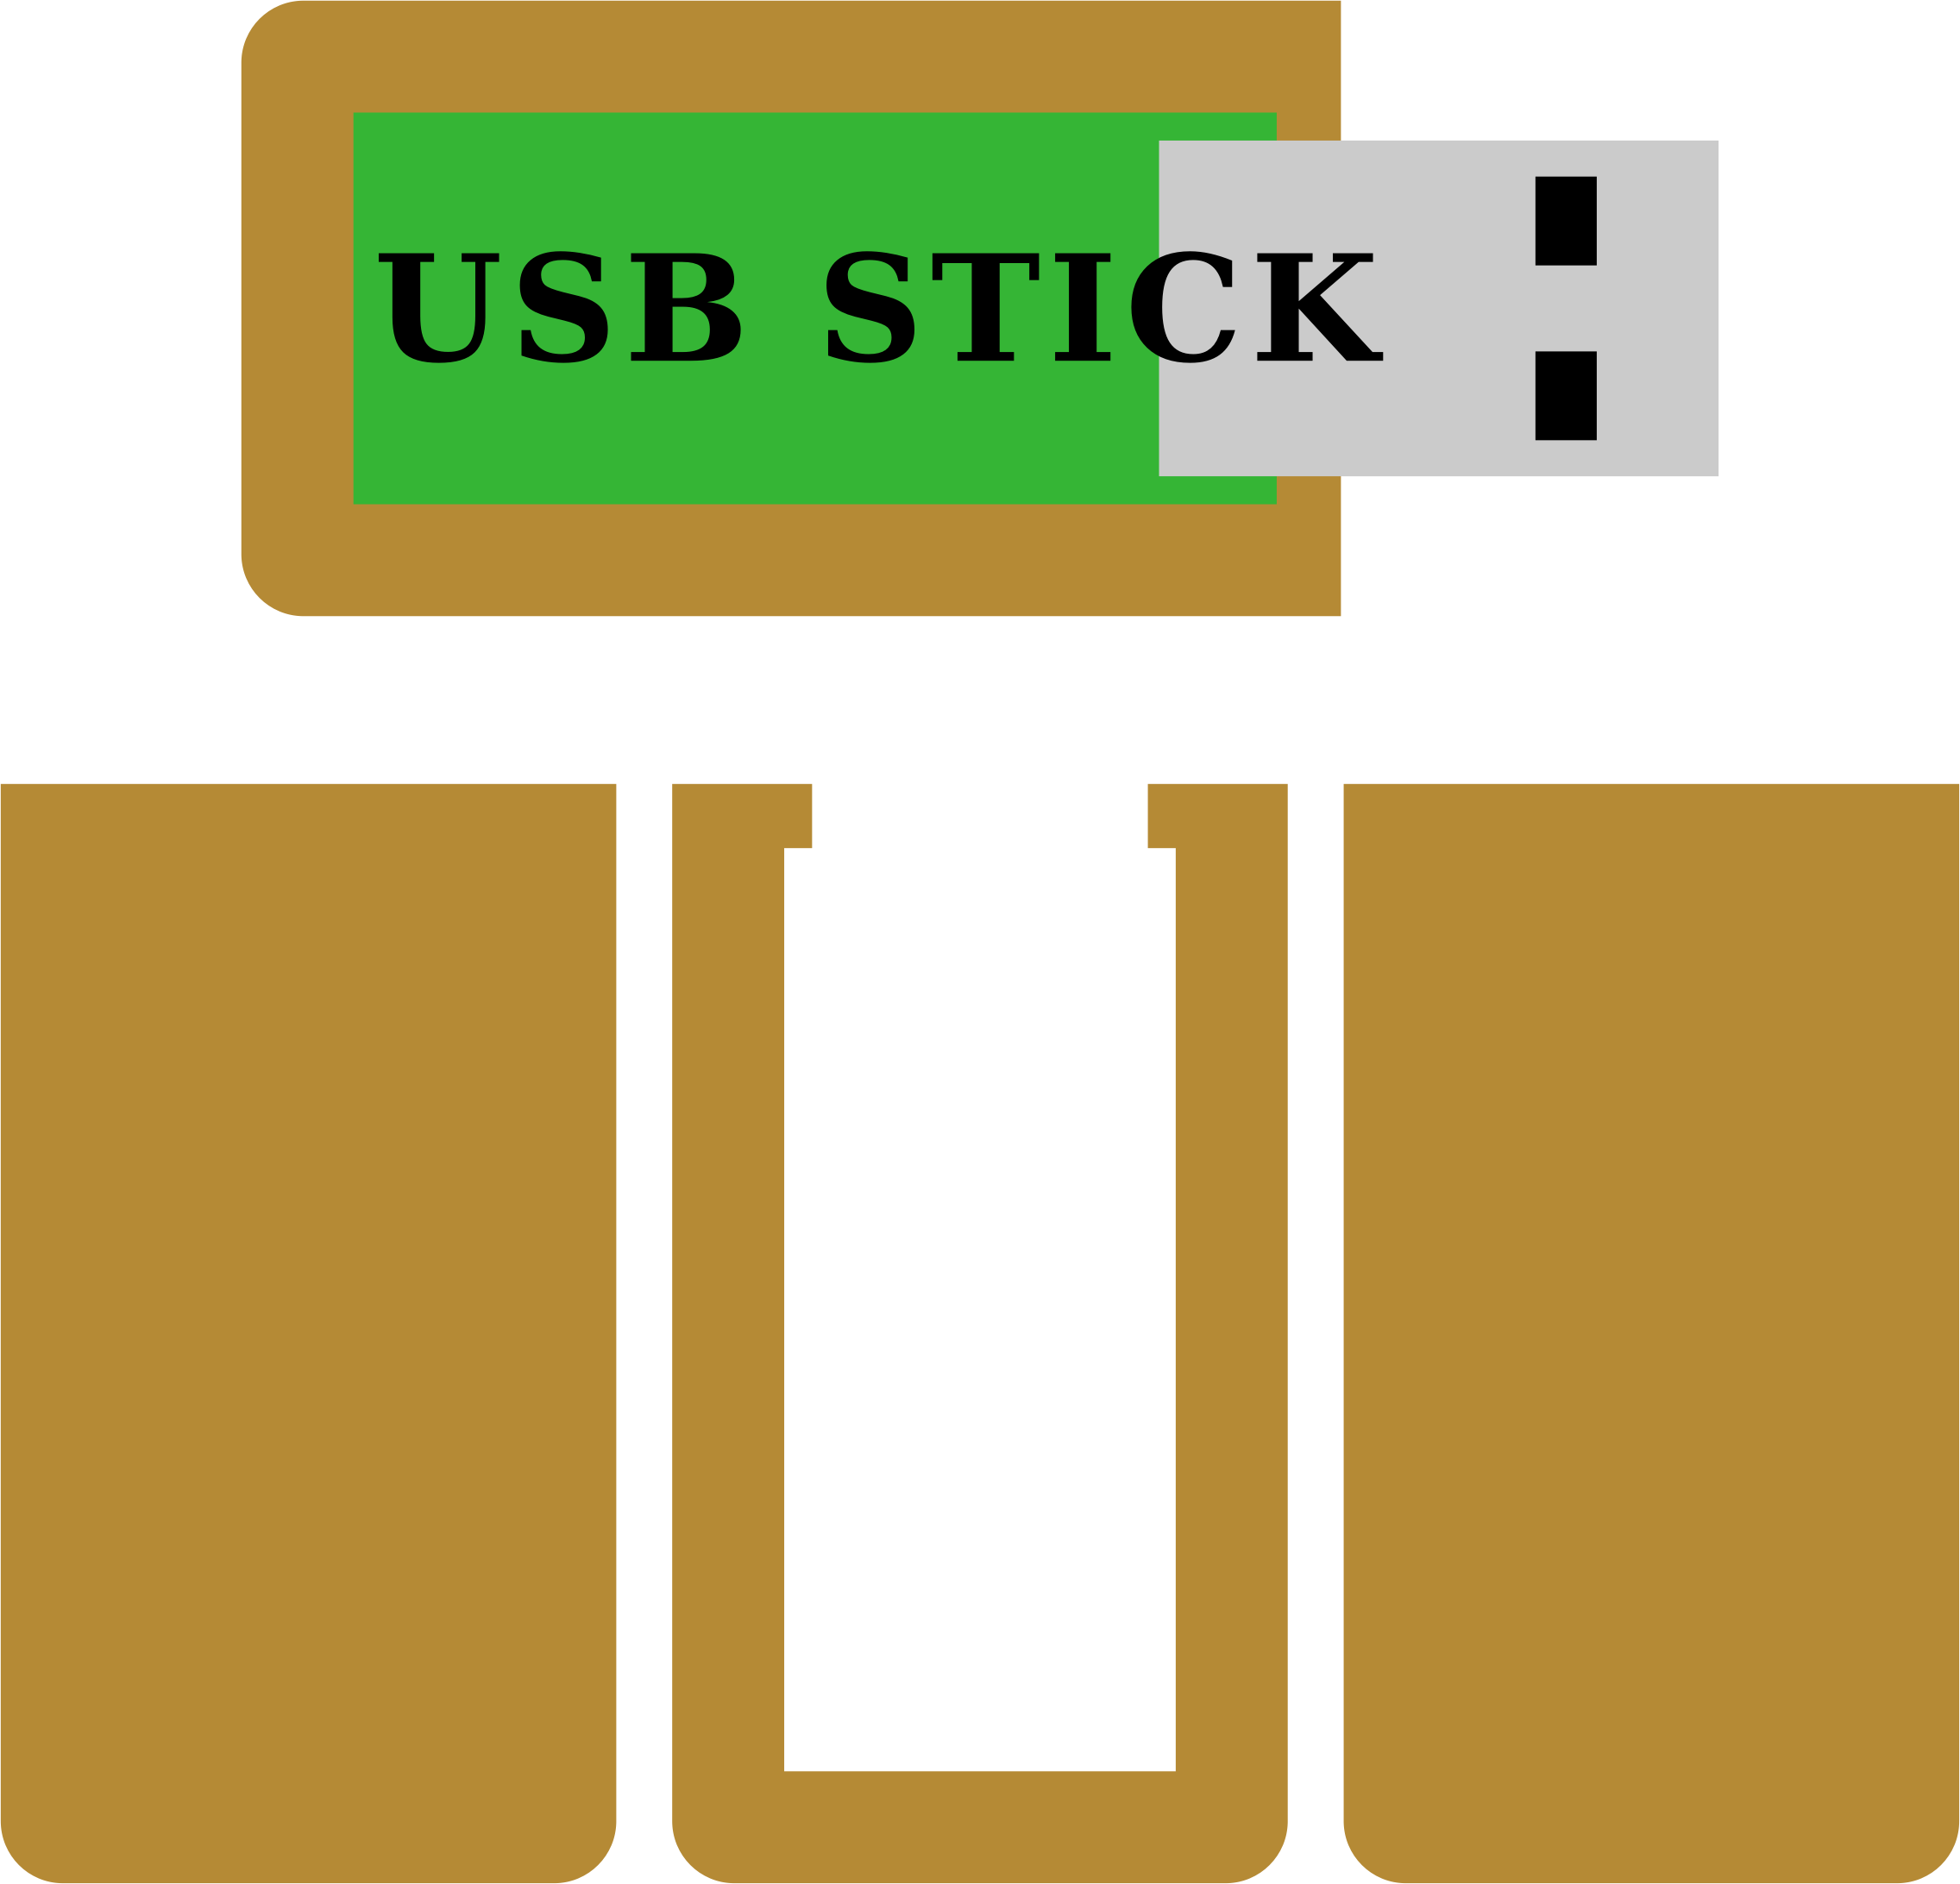 USB Stick, original size for own wooden casing by JOhannski